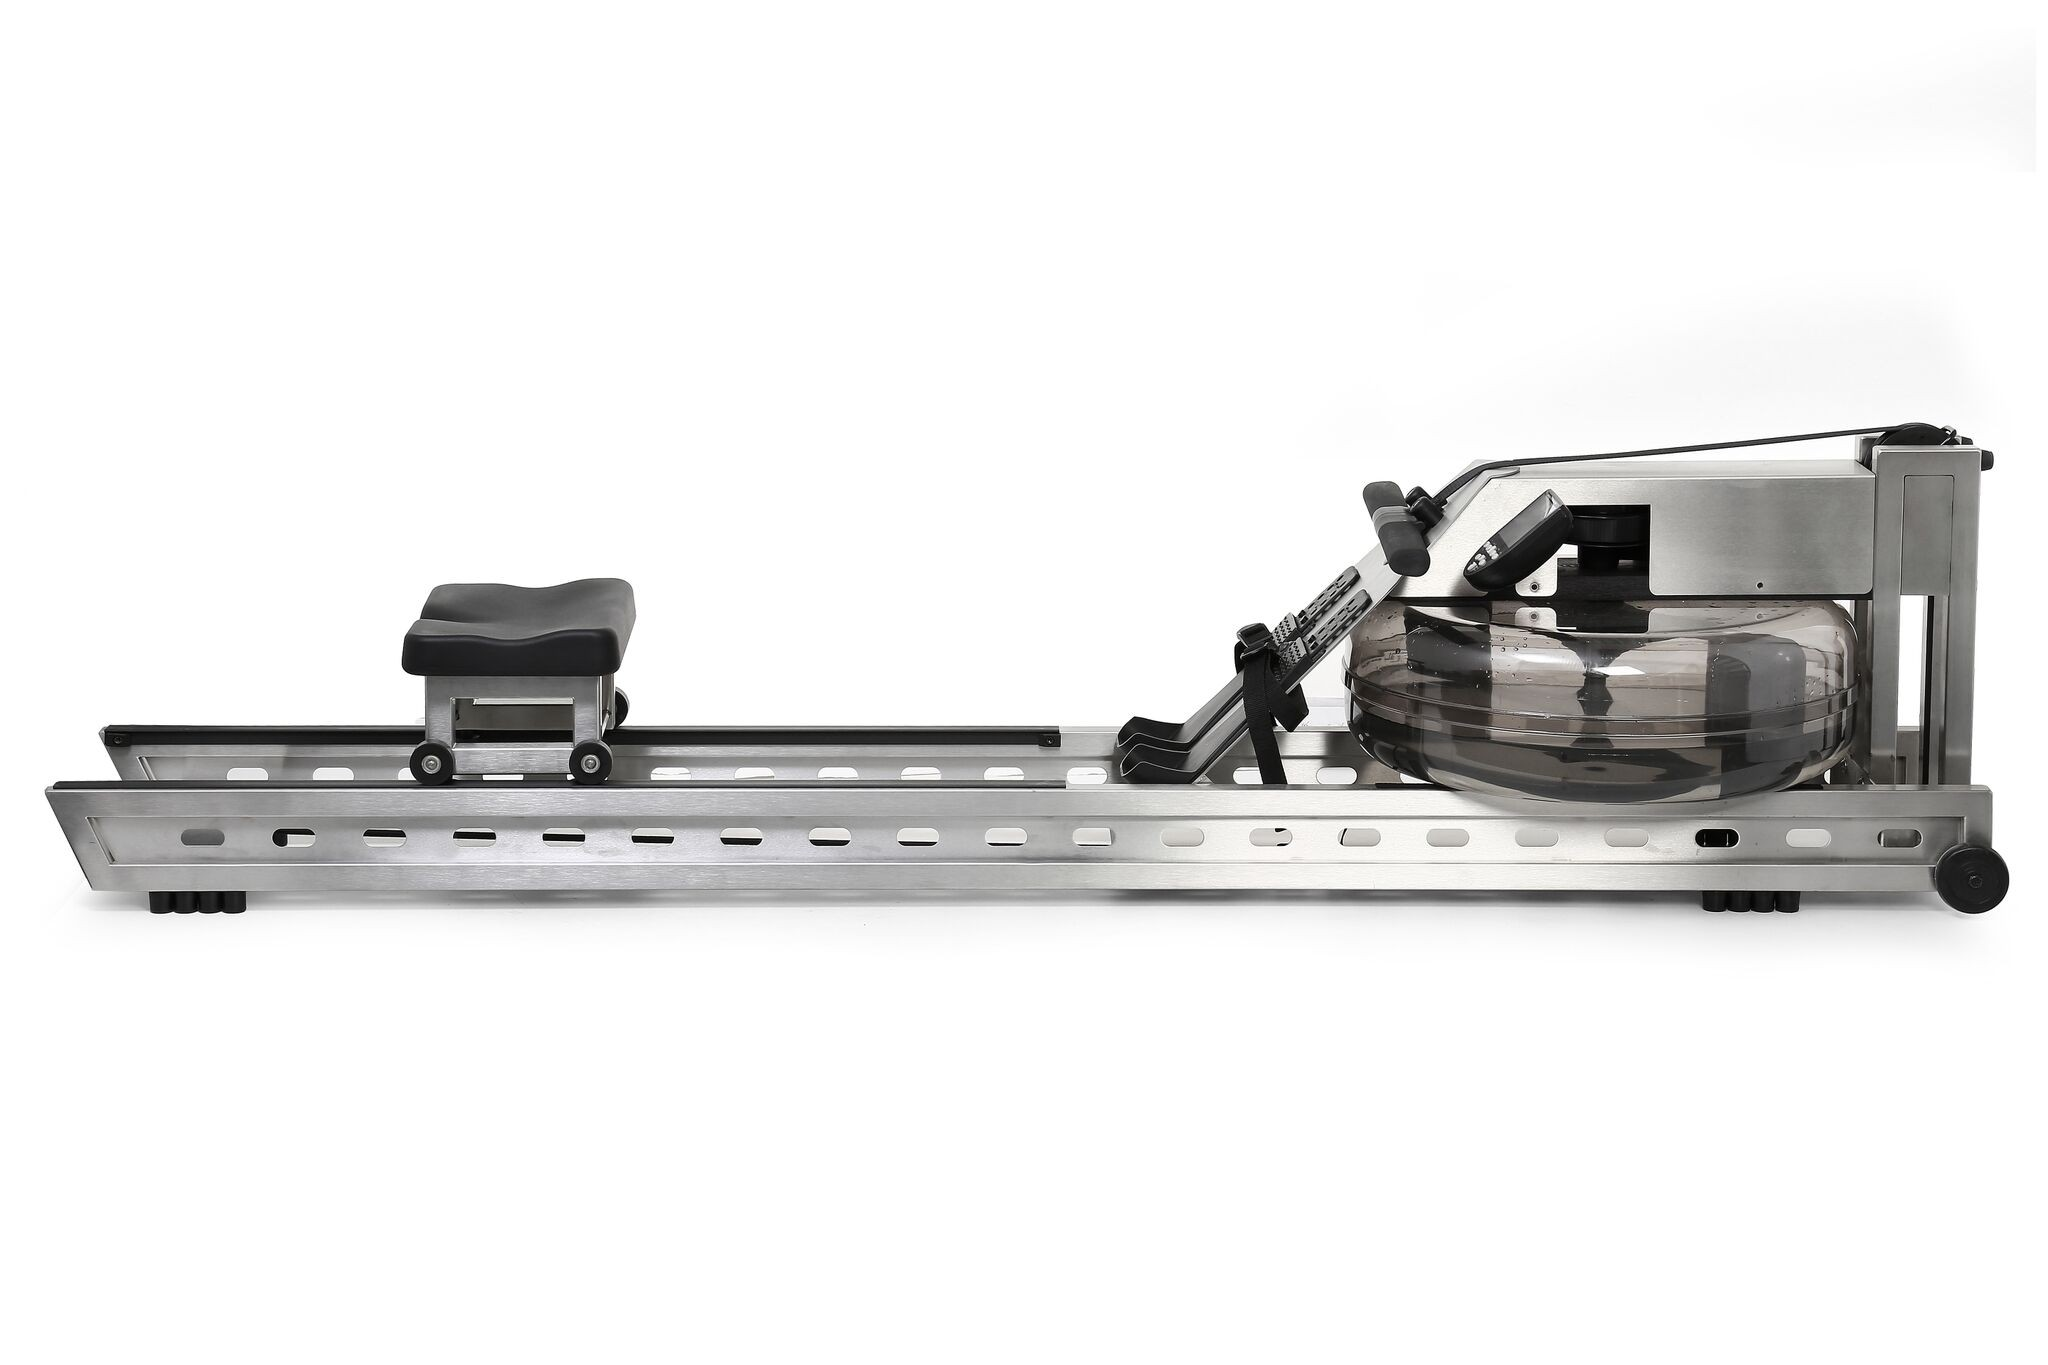 WATERROWER S1 LORISE ROWING MACHINE